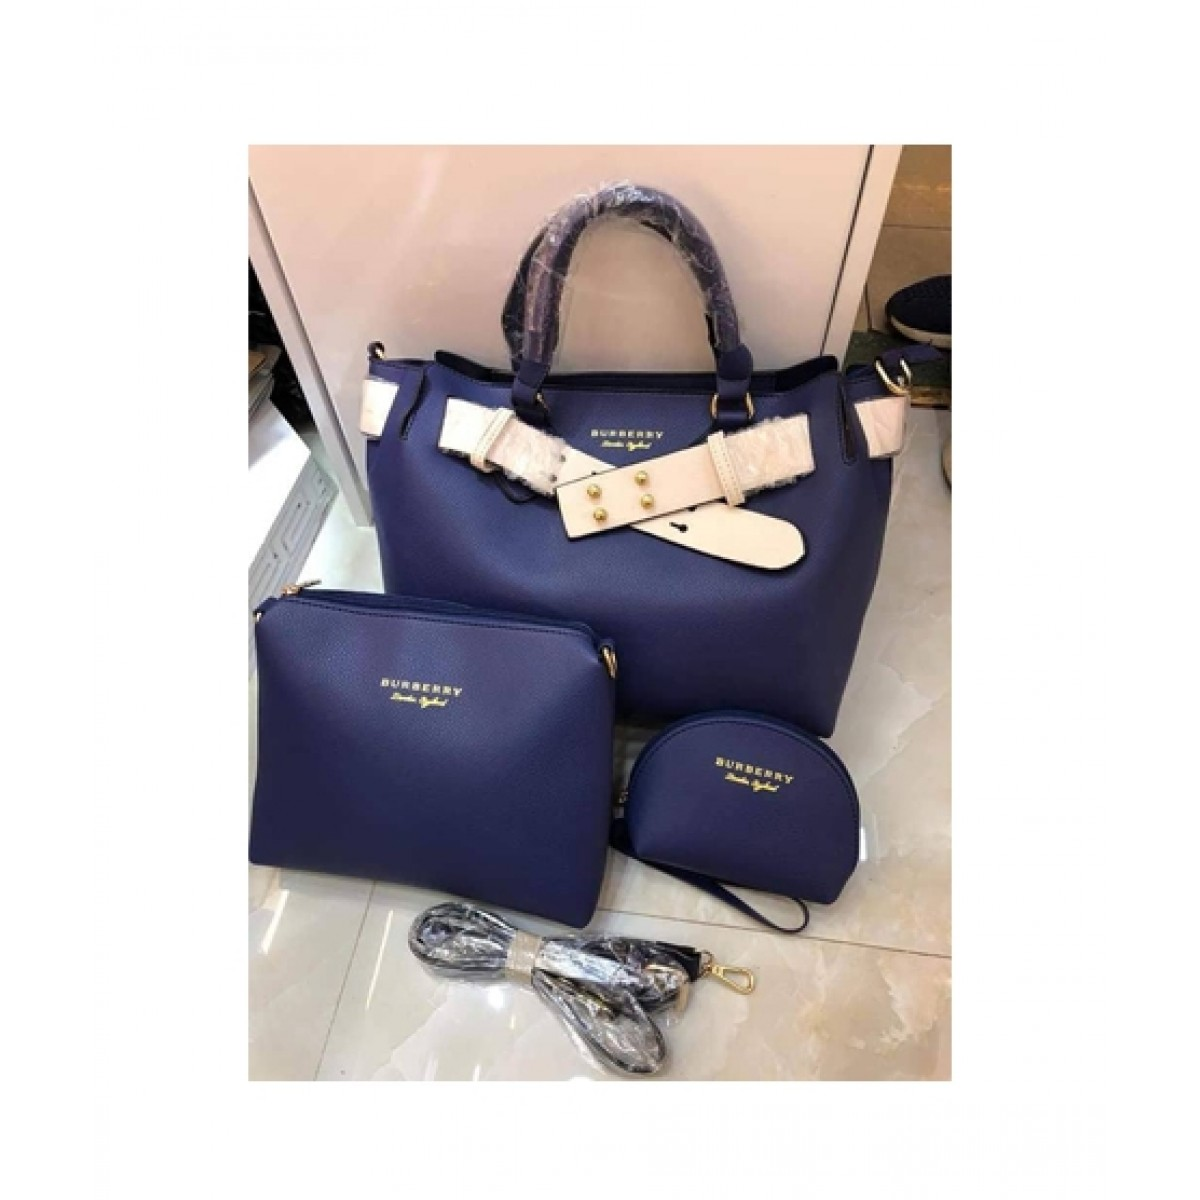 9280d010332b Shoppinggaardi Burberry bags Women Navy Blue (SG-AK-03) Price in Pakistan